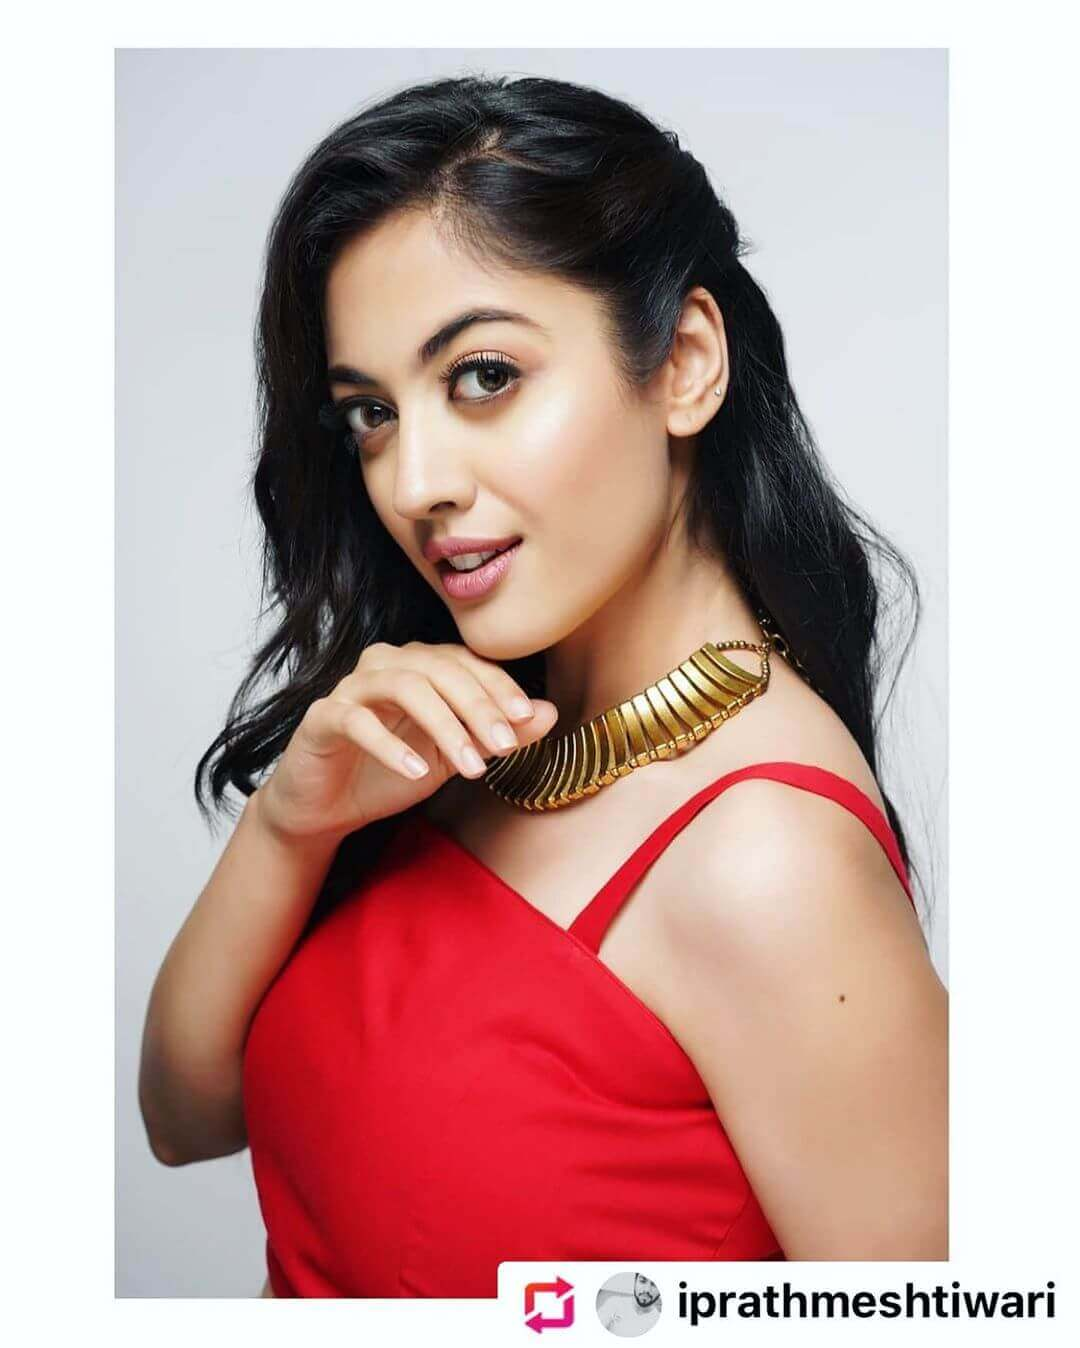 aditi sharma photo